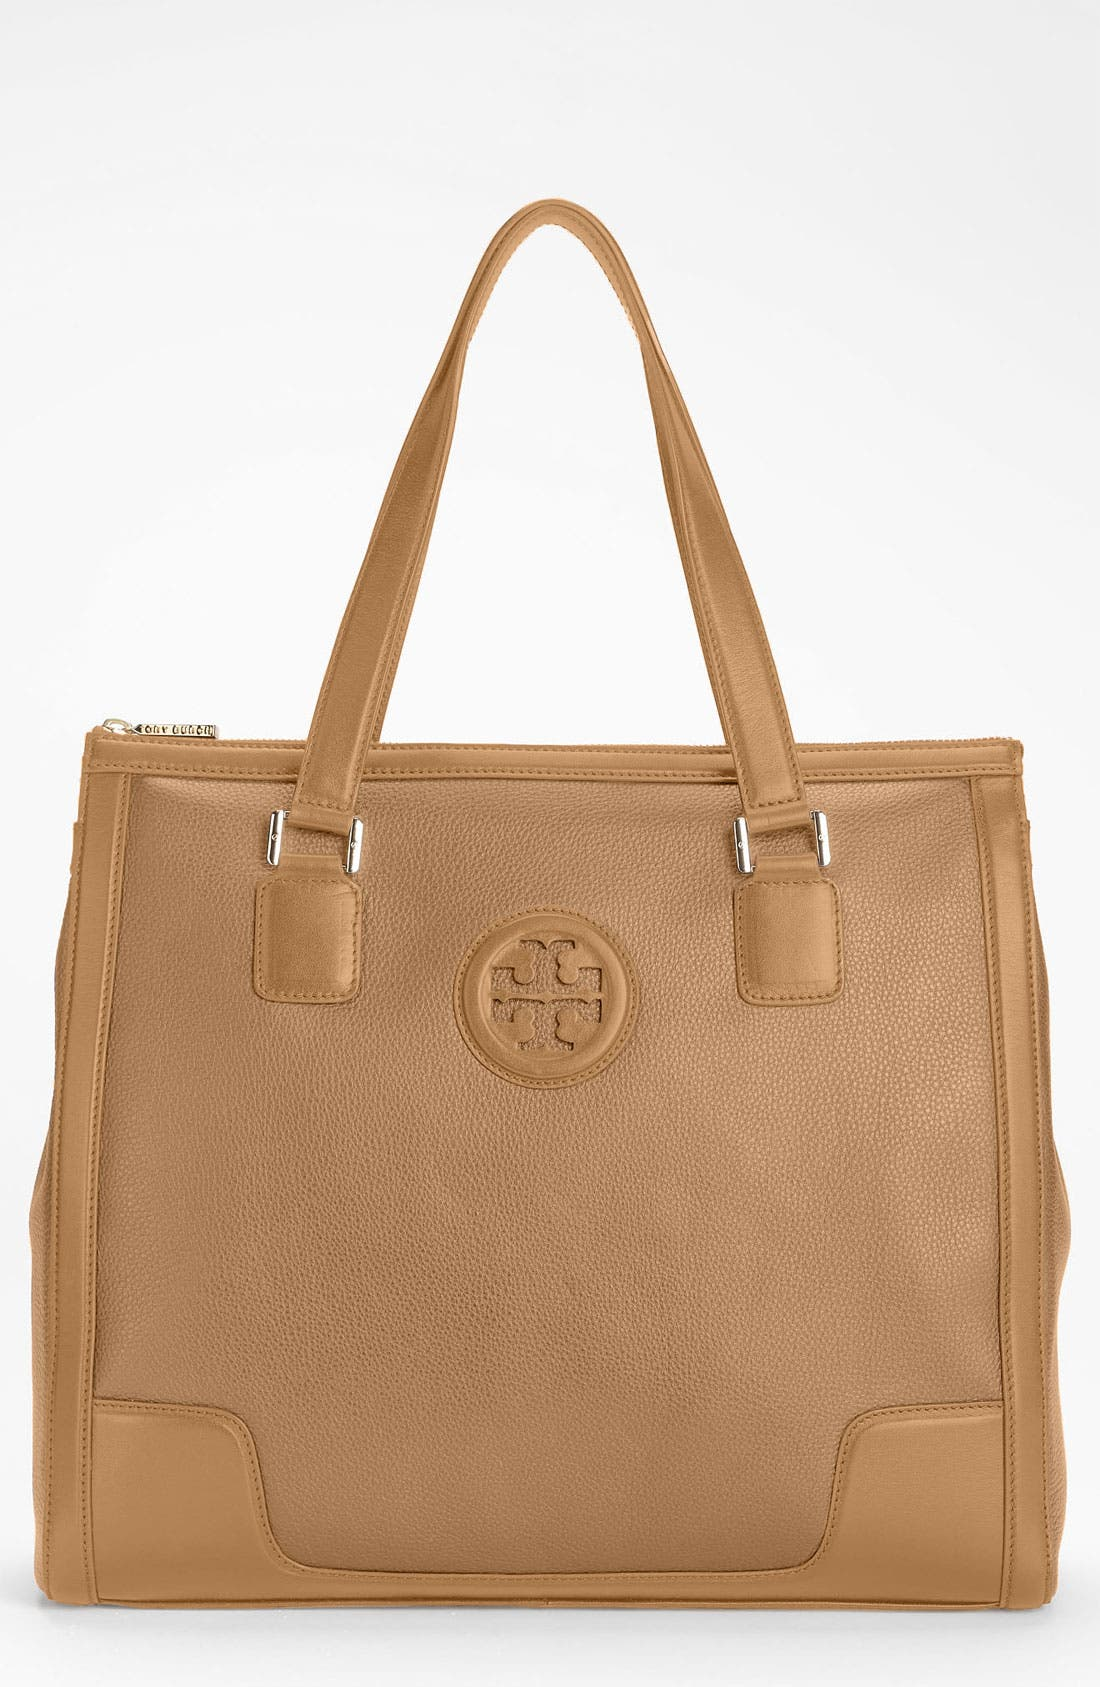 Alternate Image 1 Selected - Tory Burch 'Hannah' Tote